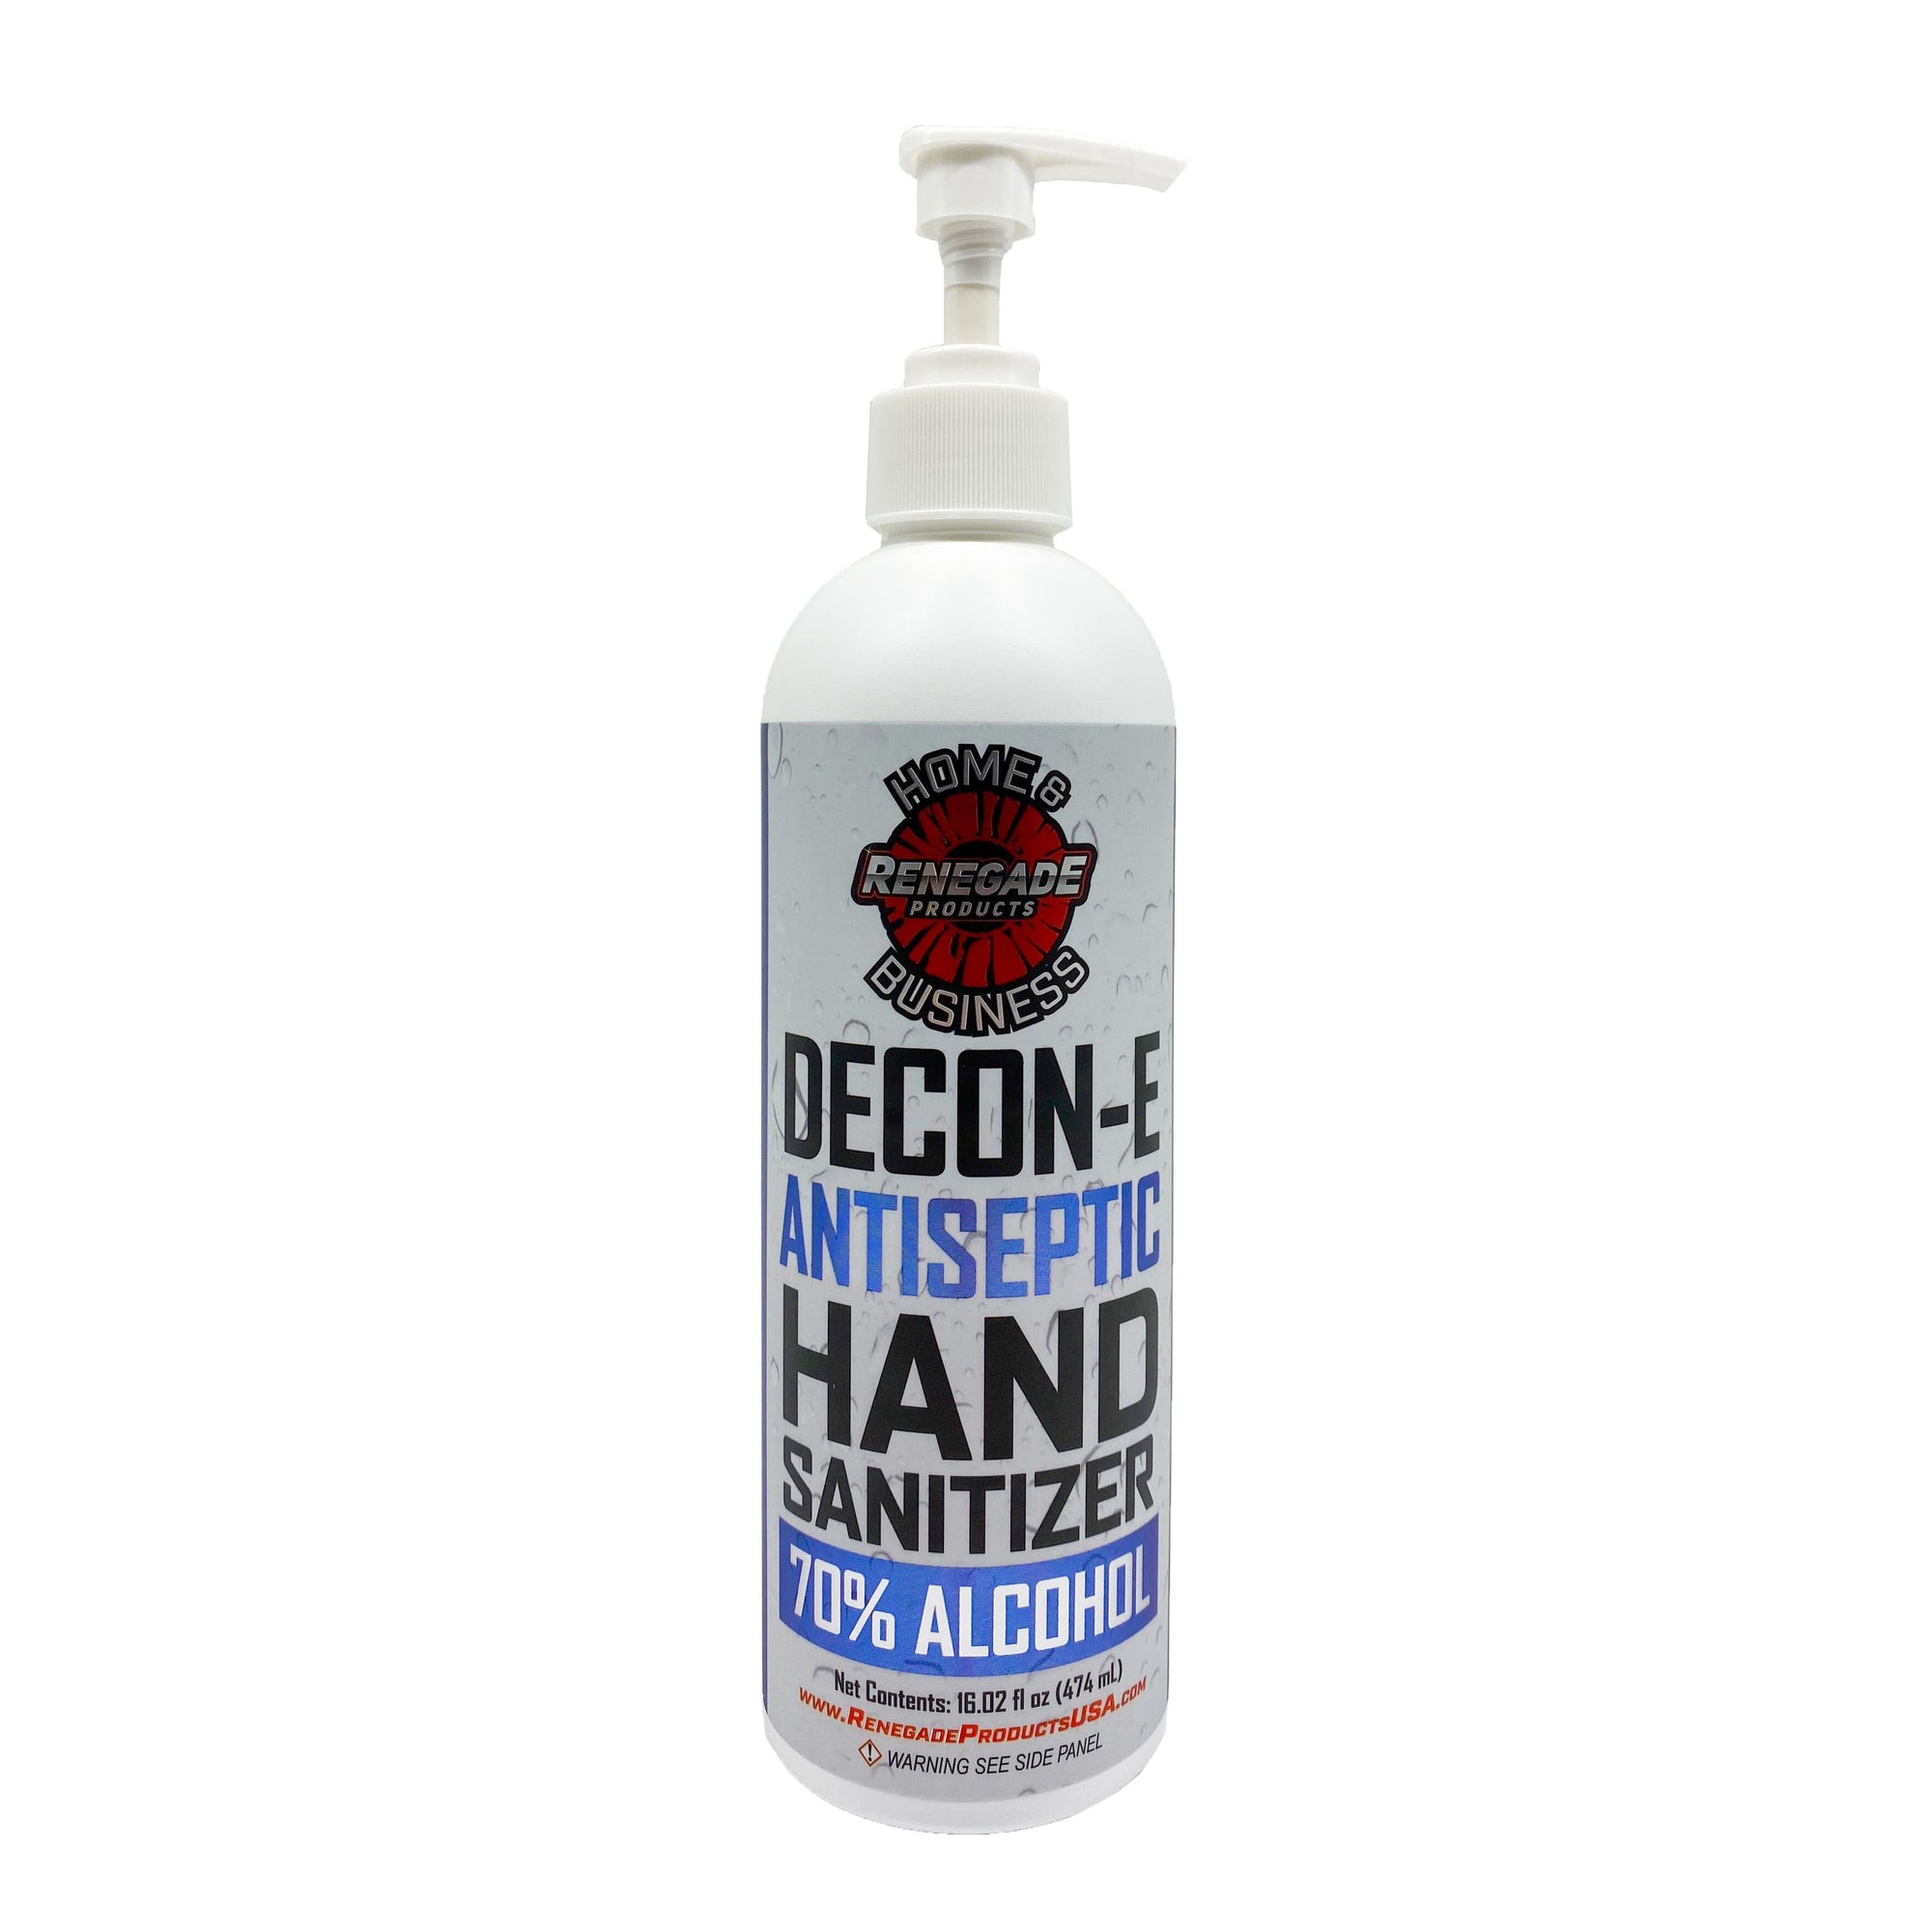 Decon-E Antiseptic Hand Sanitizer Gel (Ethyl Alcohol-Based)